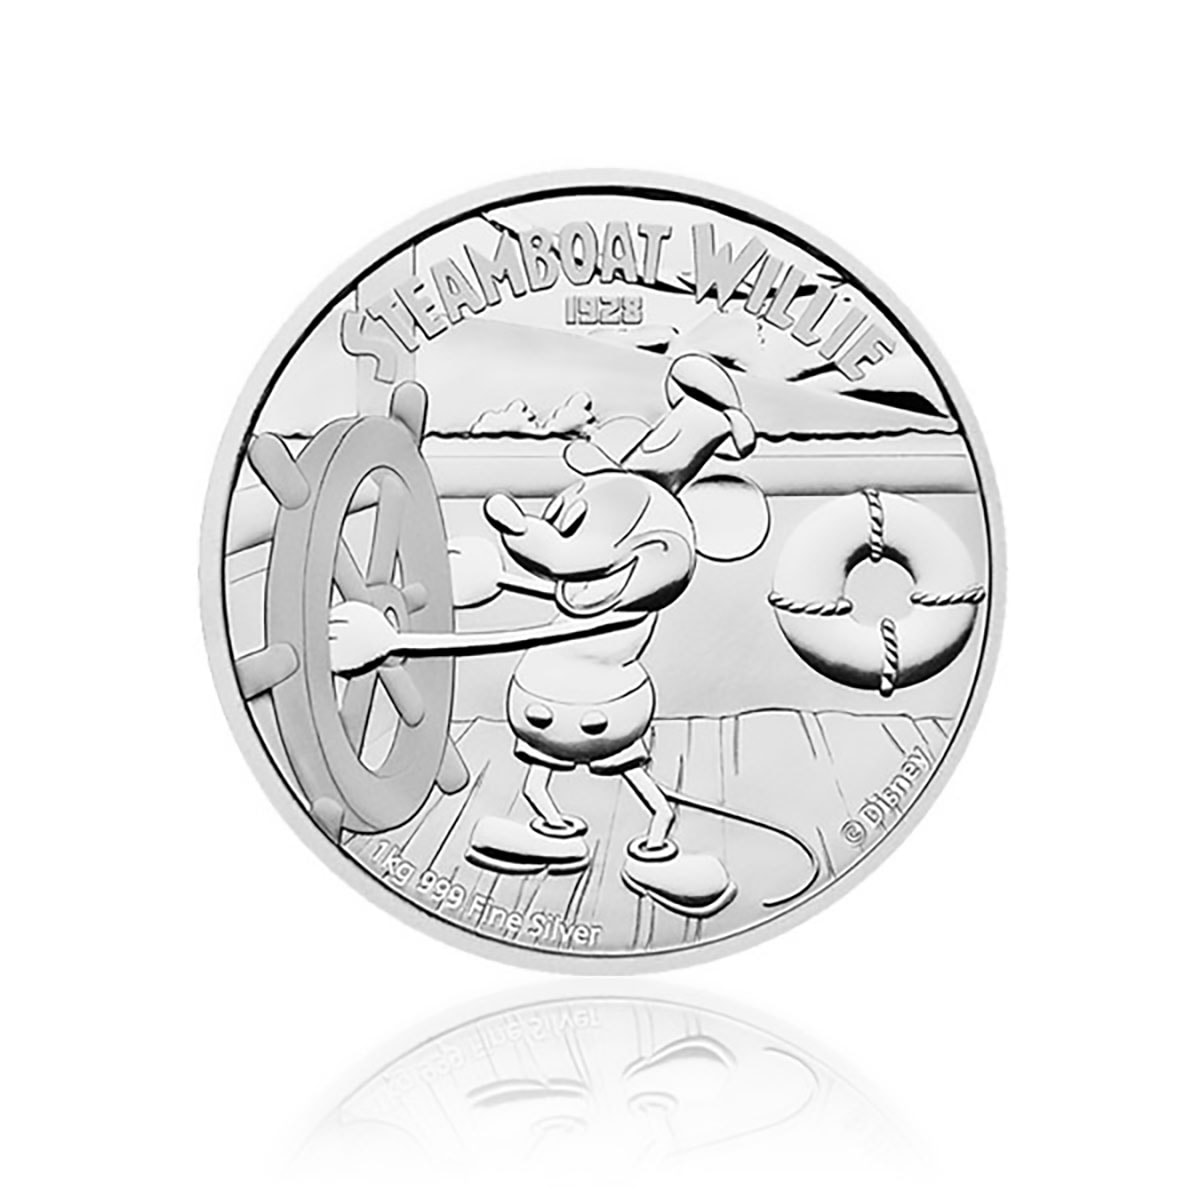 1kg Silber Disney Steamboat Willie PP 2015